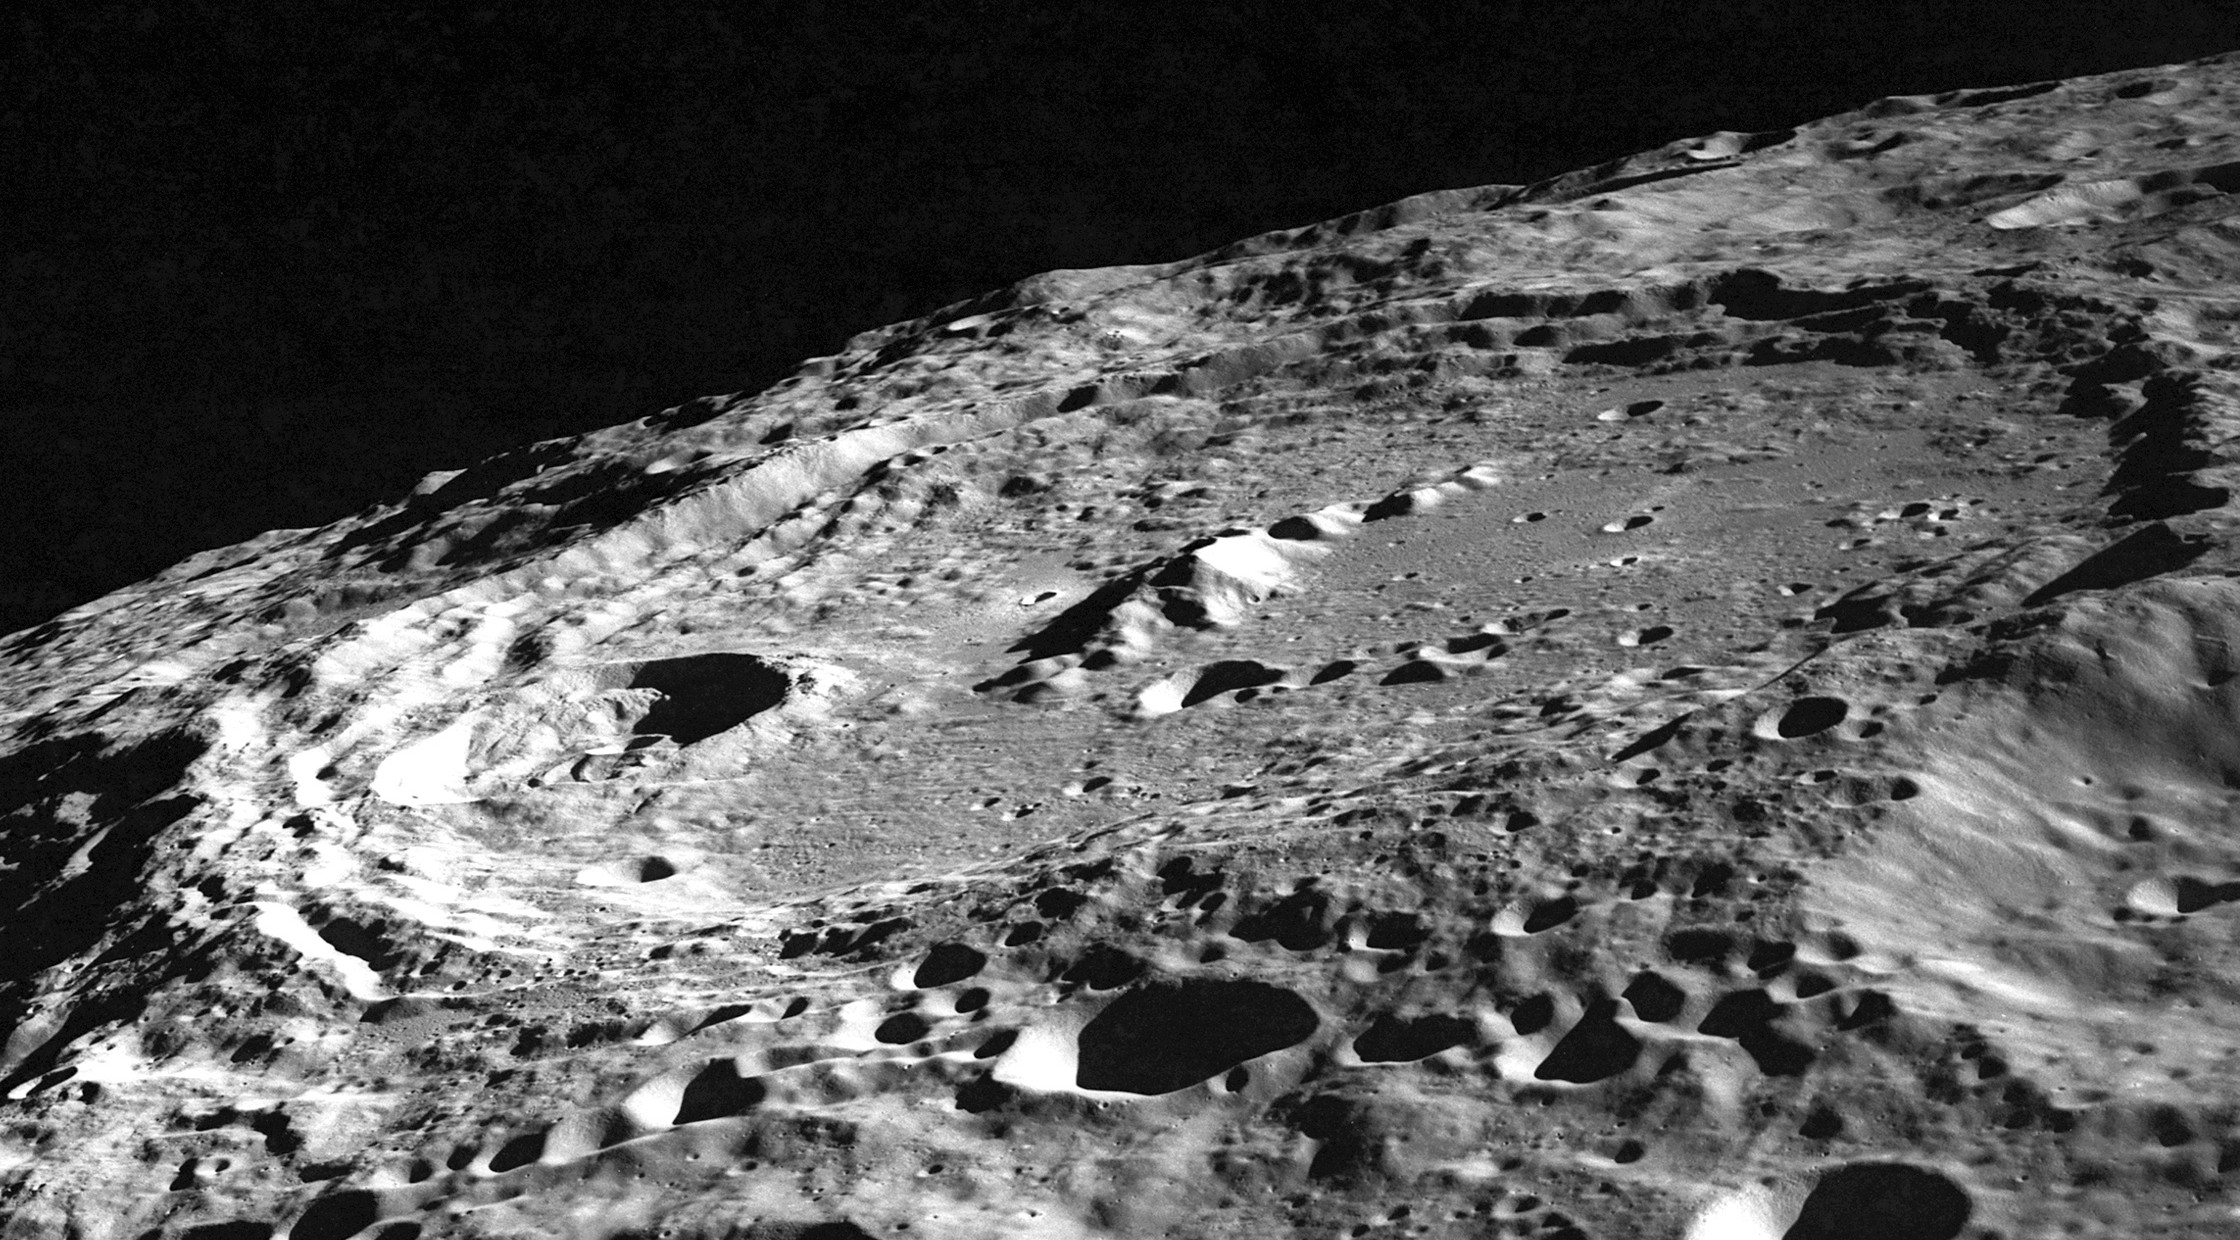 Keeler_crater_AS10-32-4823.jpg